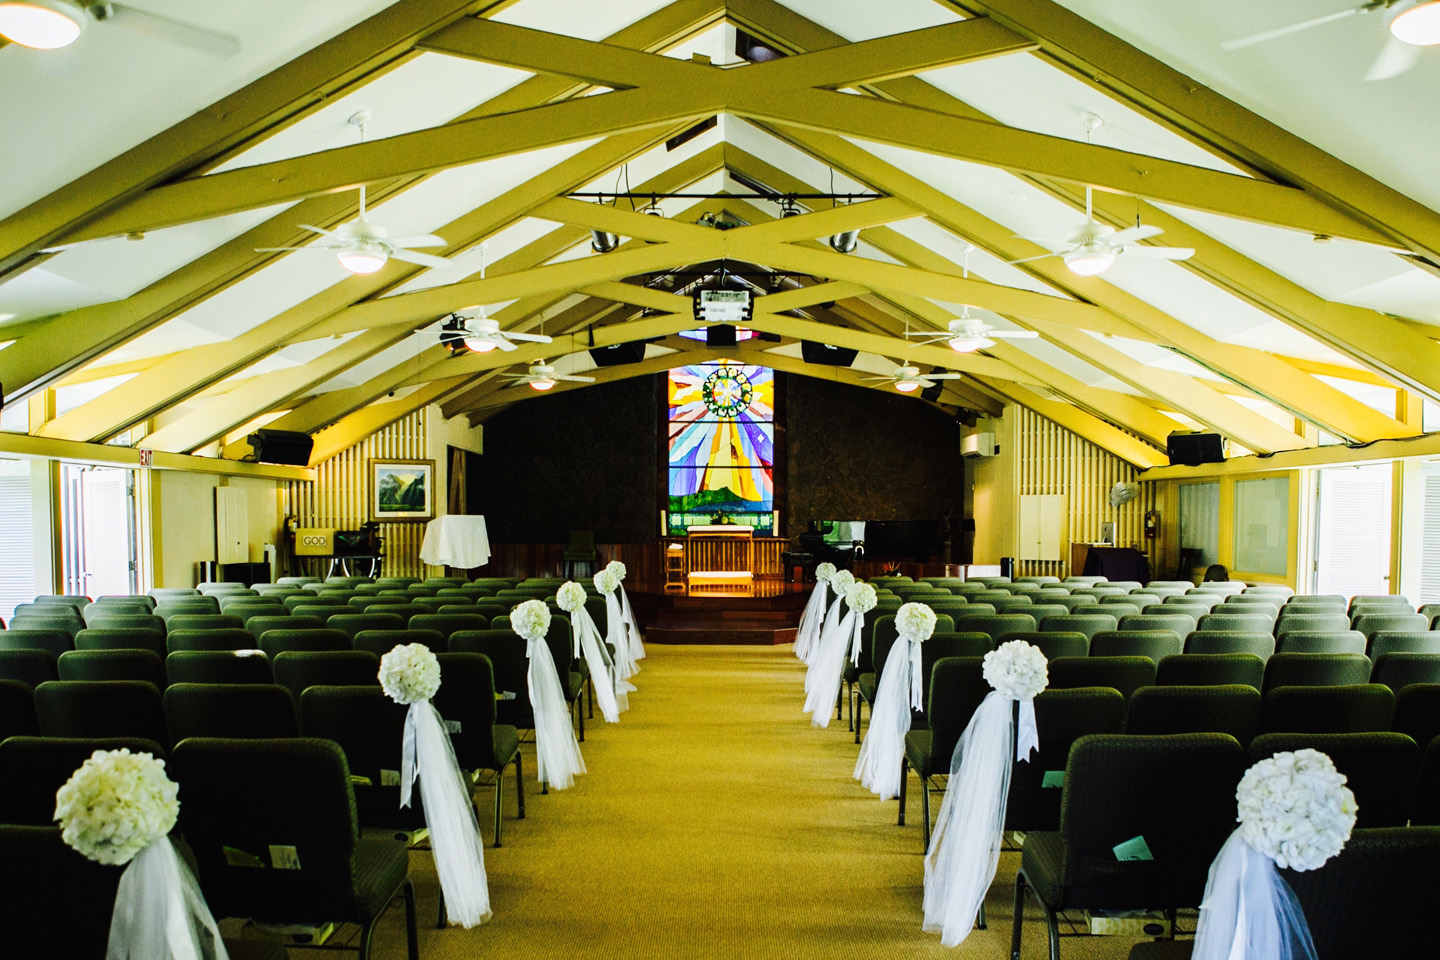 UNITY CHURCH OF HAWAII